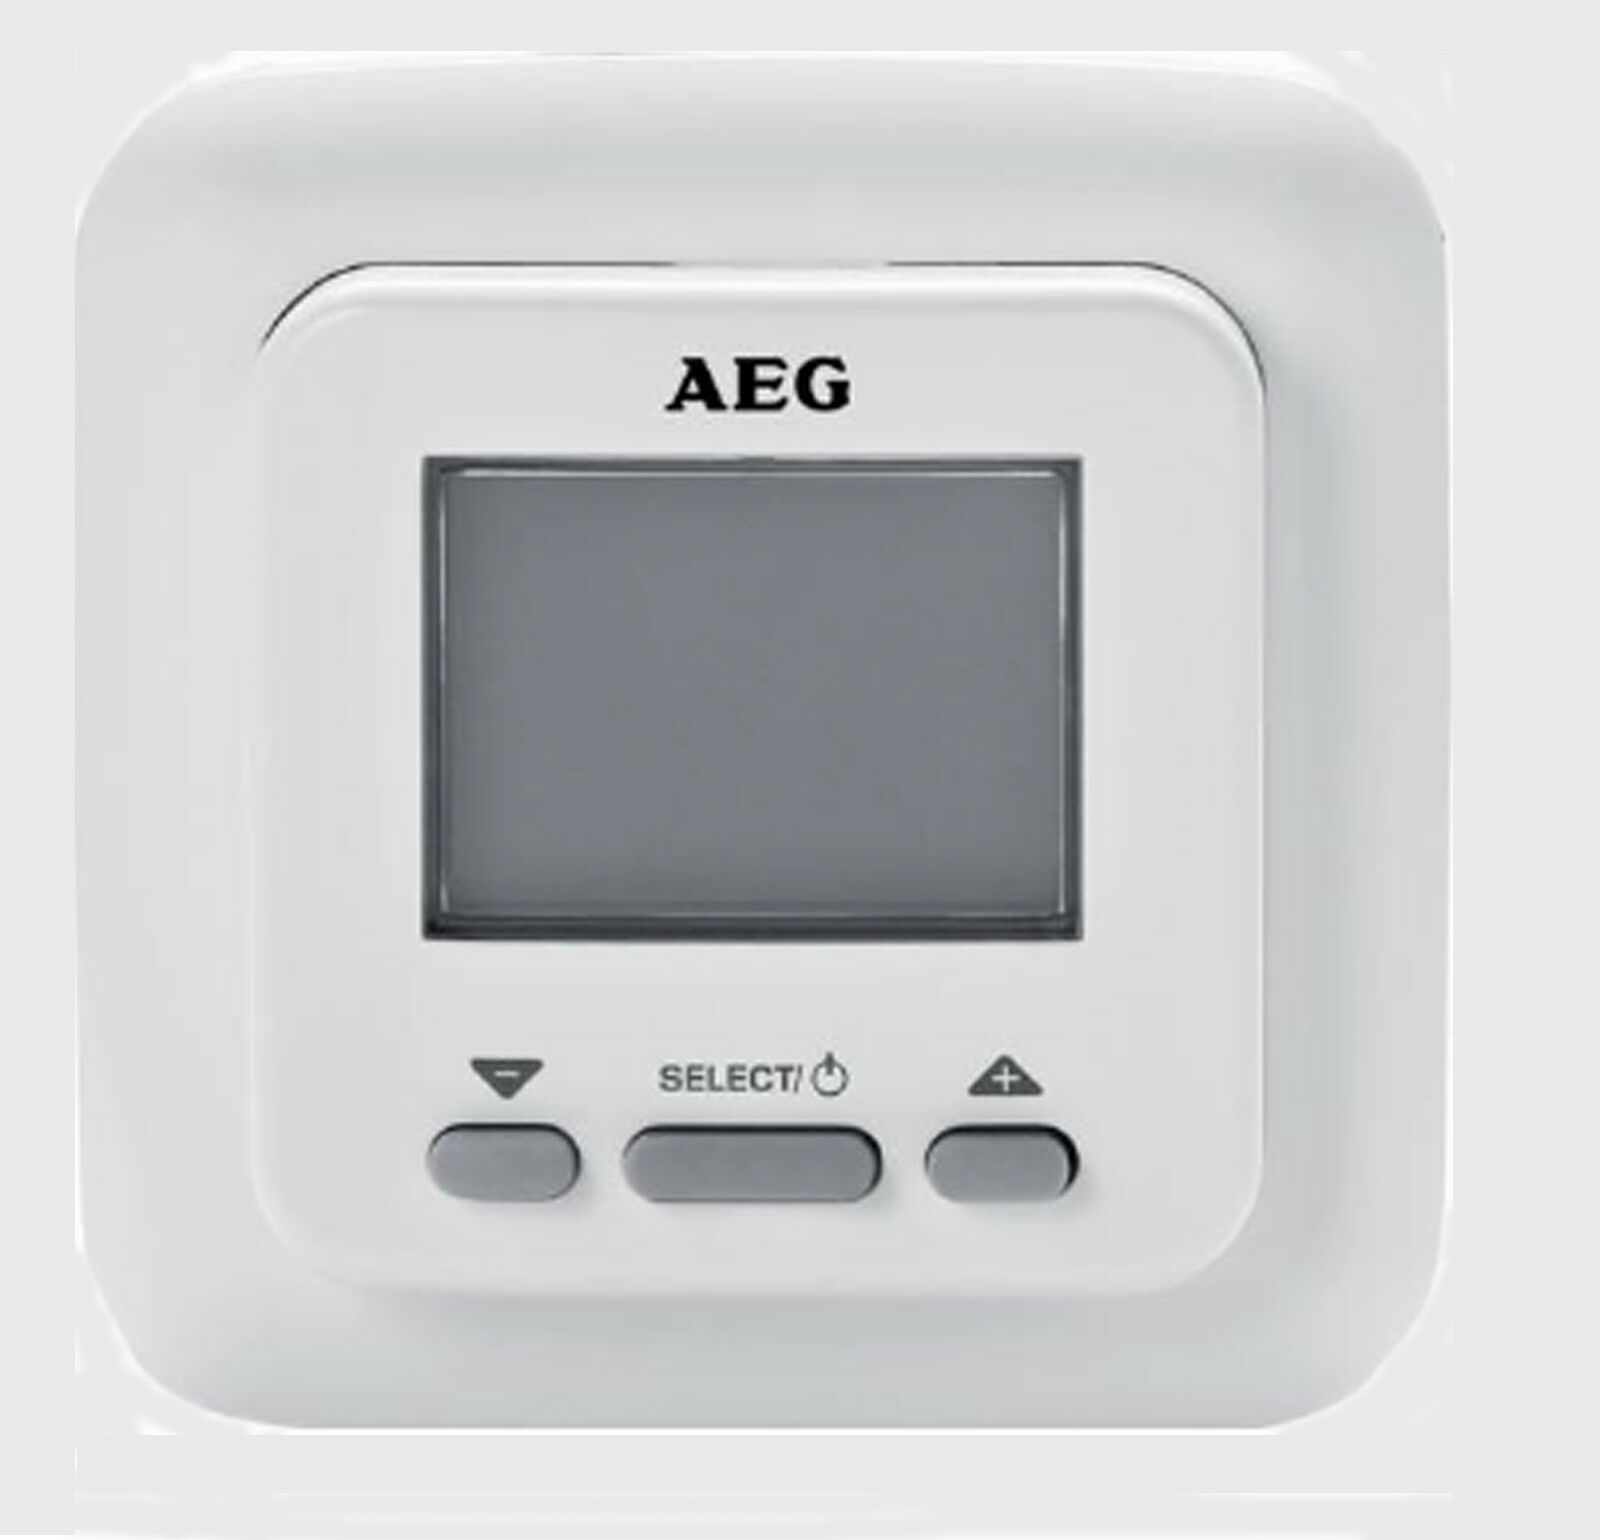 AEG FTD 720 Digitaler Temperaturregler mit LCD Display